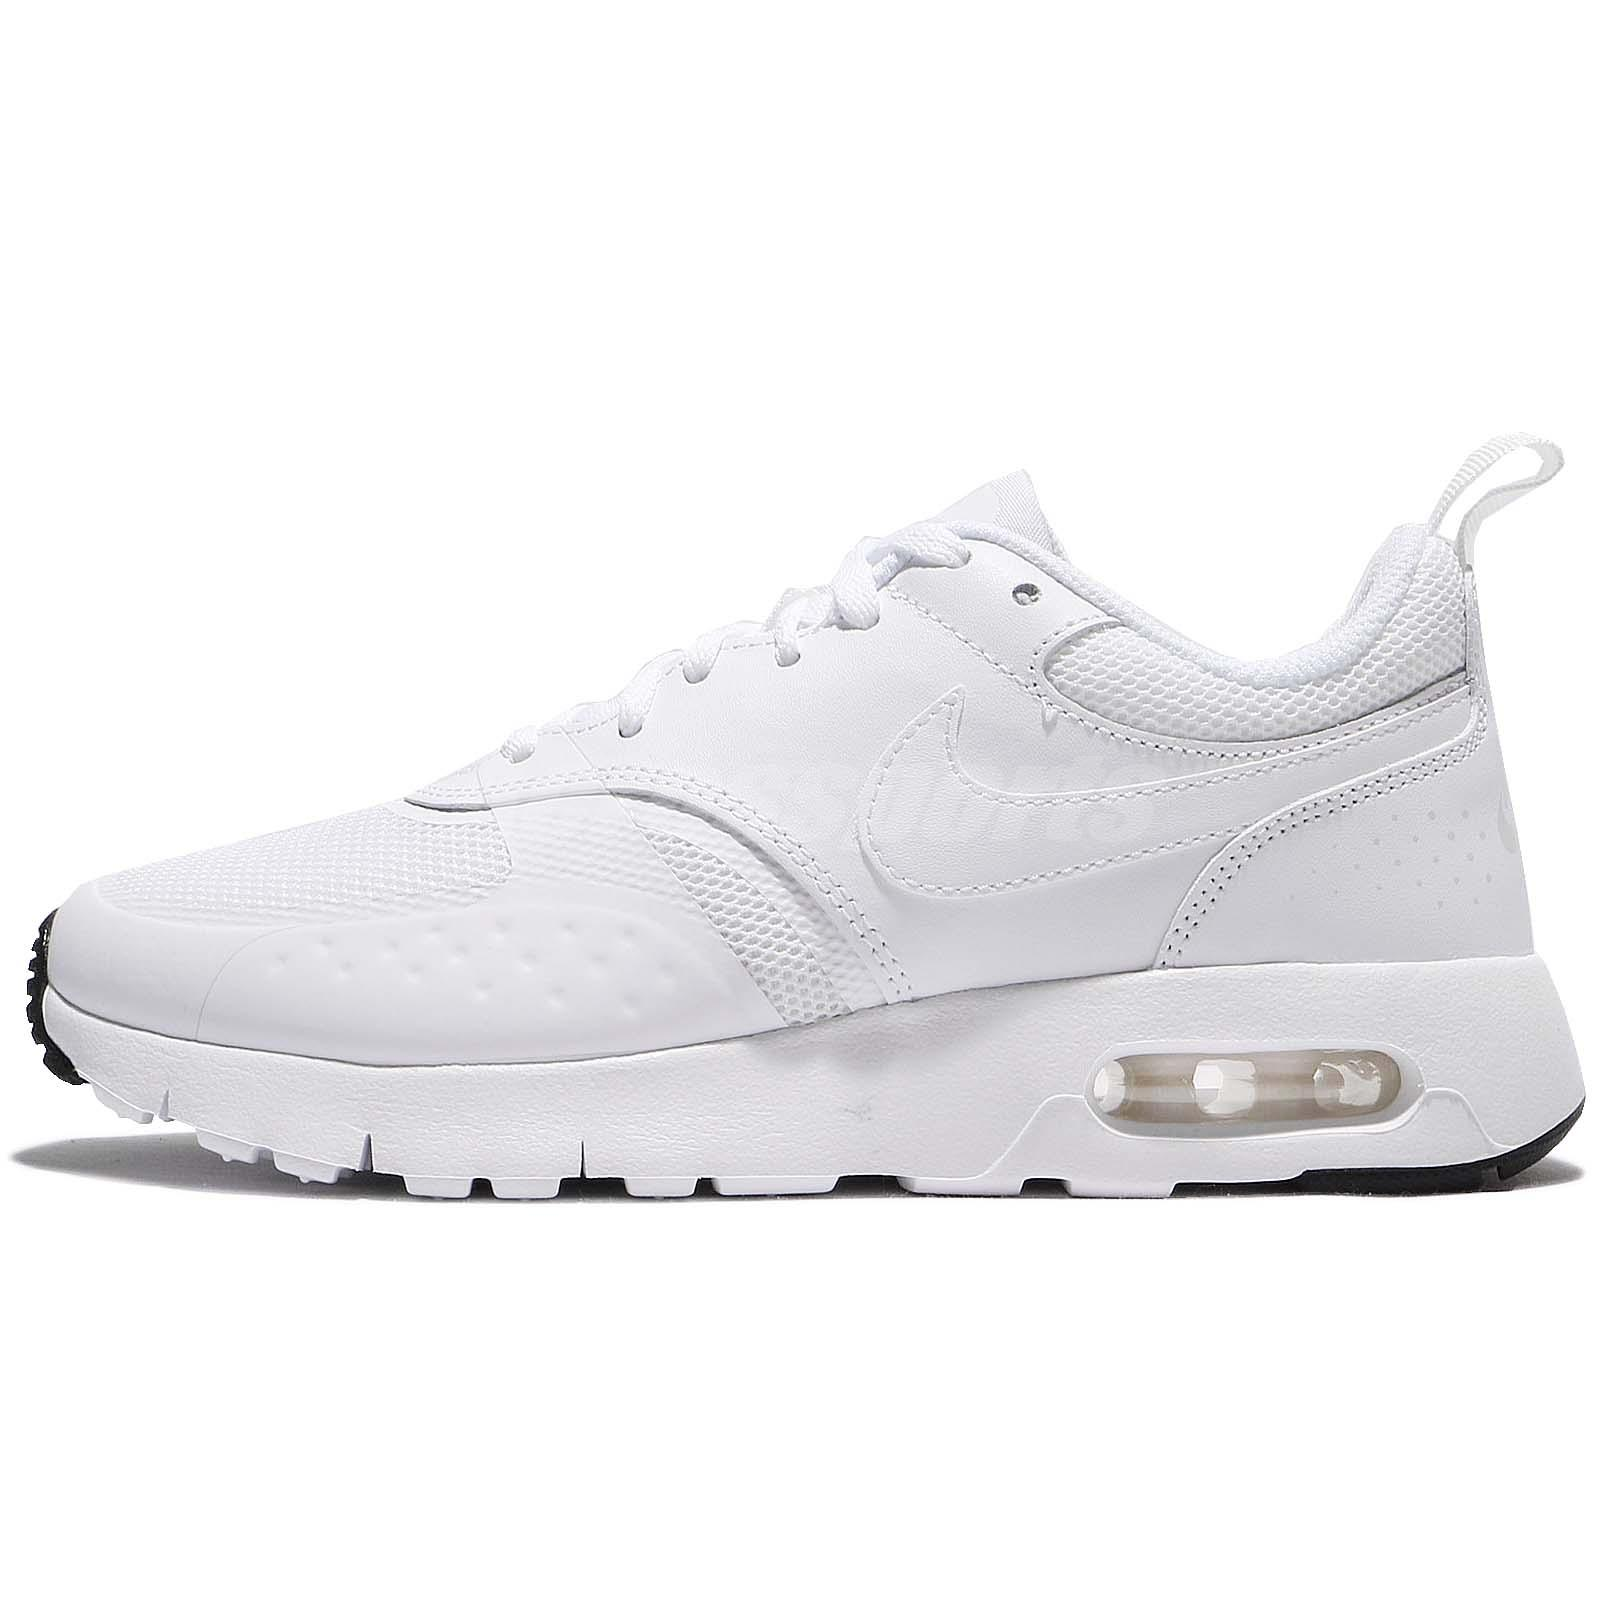 info for 2d73b 363b7 Nike Air Max Vision GS White Pure Platinum Kids Running Shoes Sneaker 917857 -100